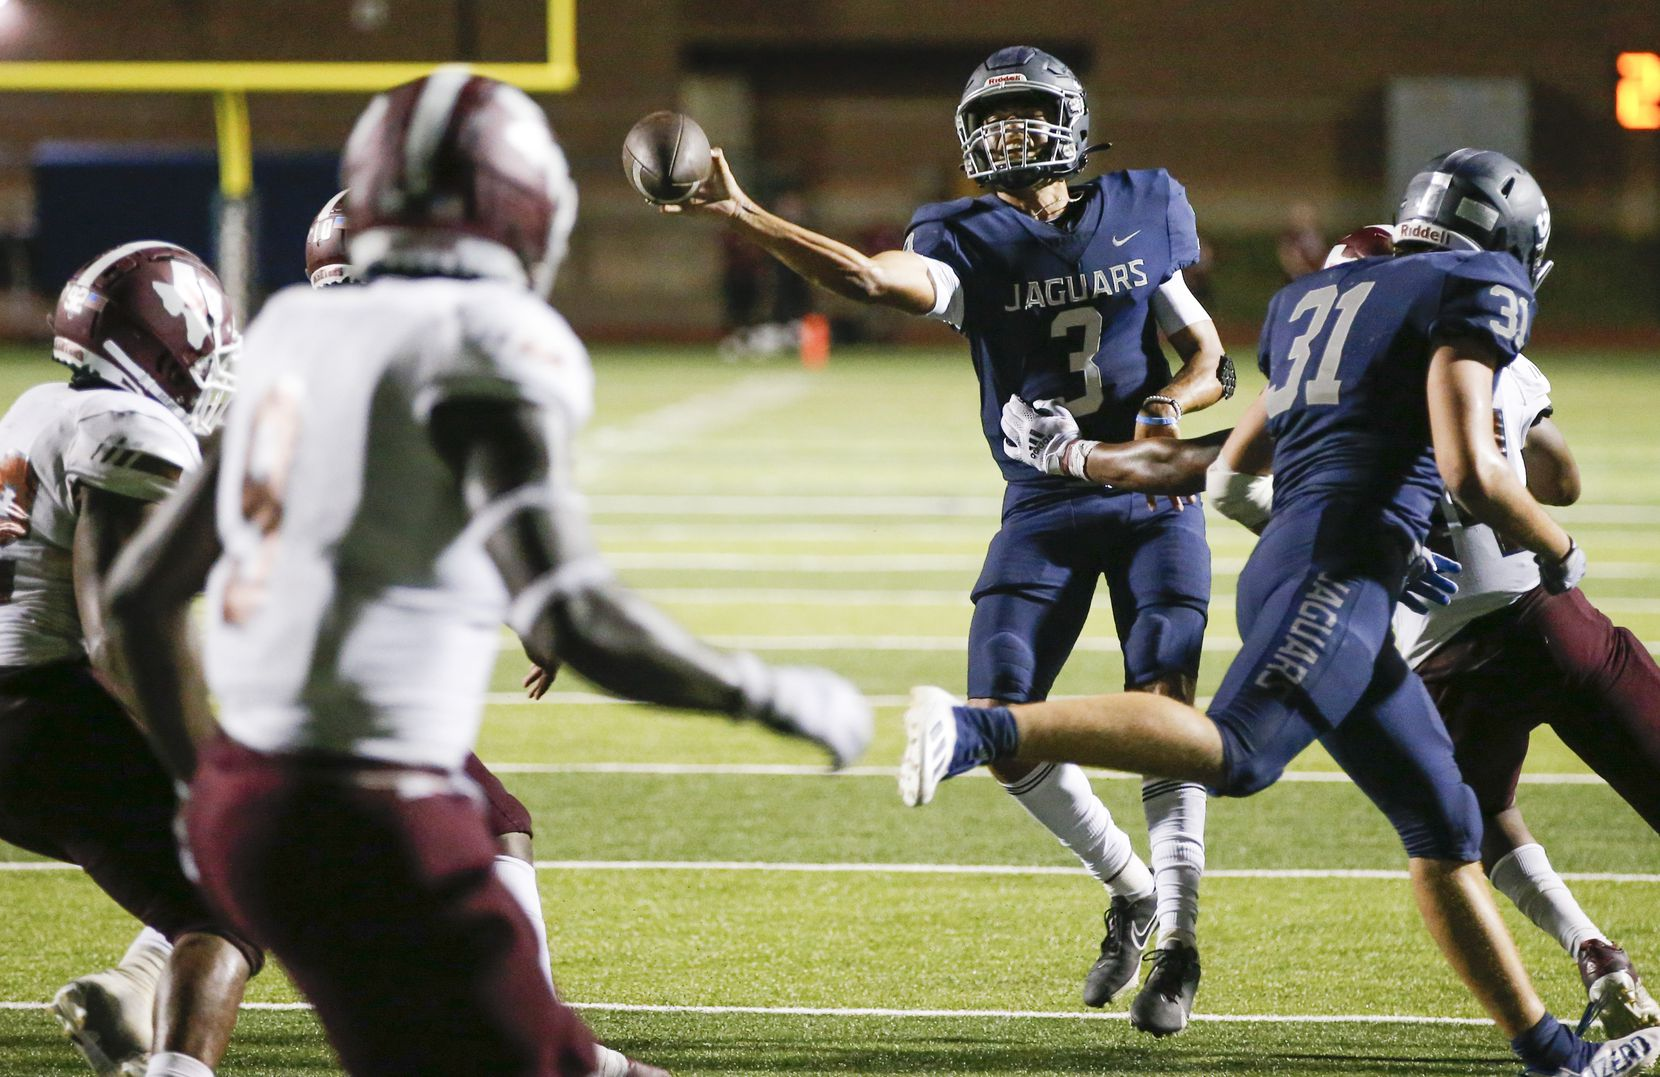 Flower Mound senior quarterback Nick Evers (3) throws during the second half of a high school football game against Mesquite at Flower Mound High School, Friday, August 27, 2021. (Brandon Wade/Special Contributor)